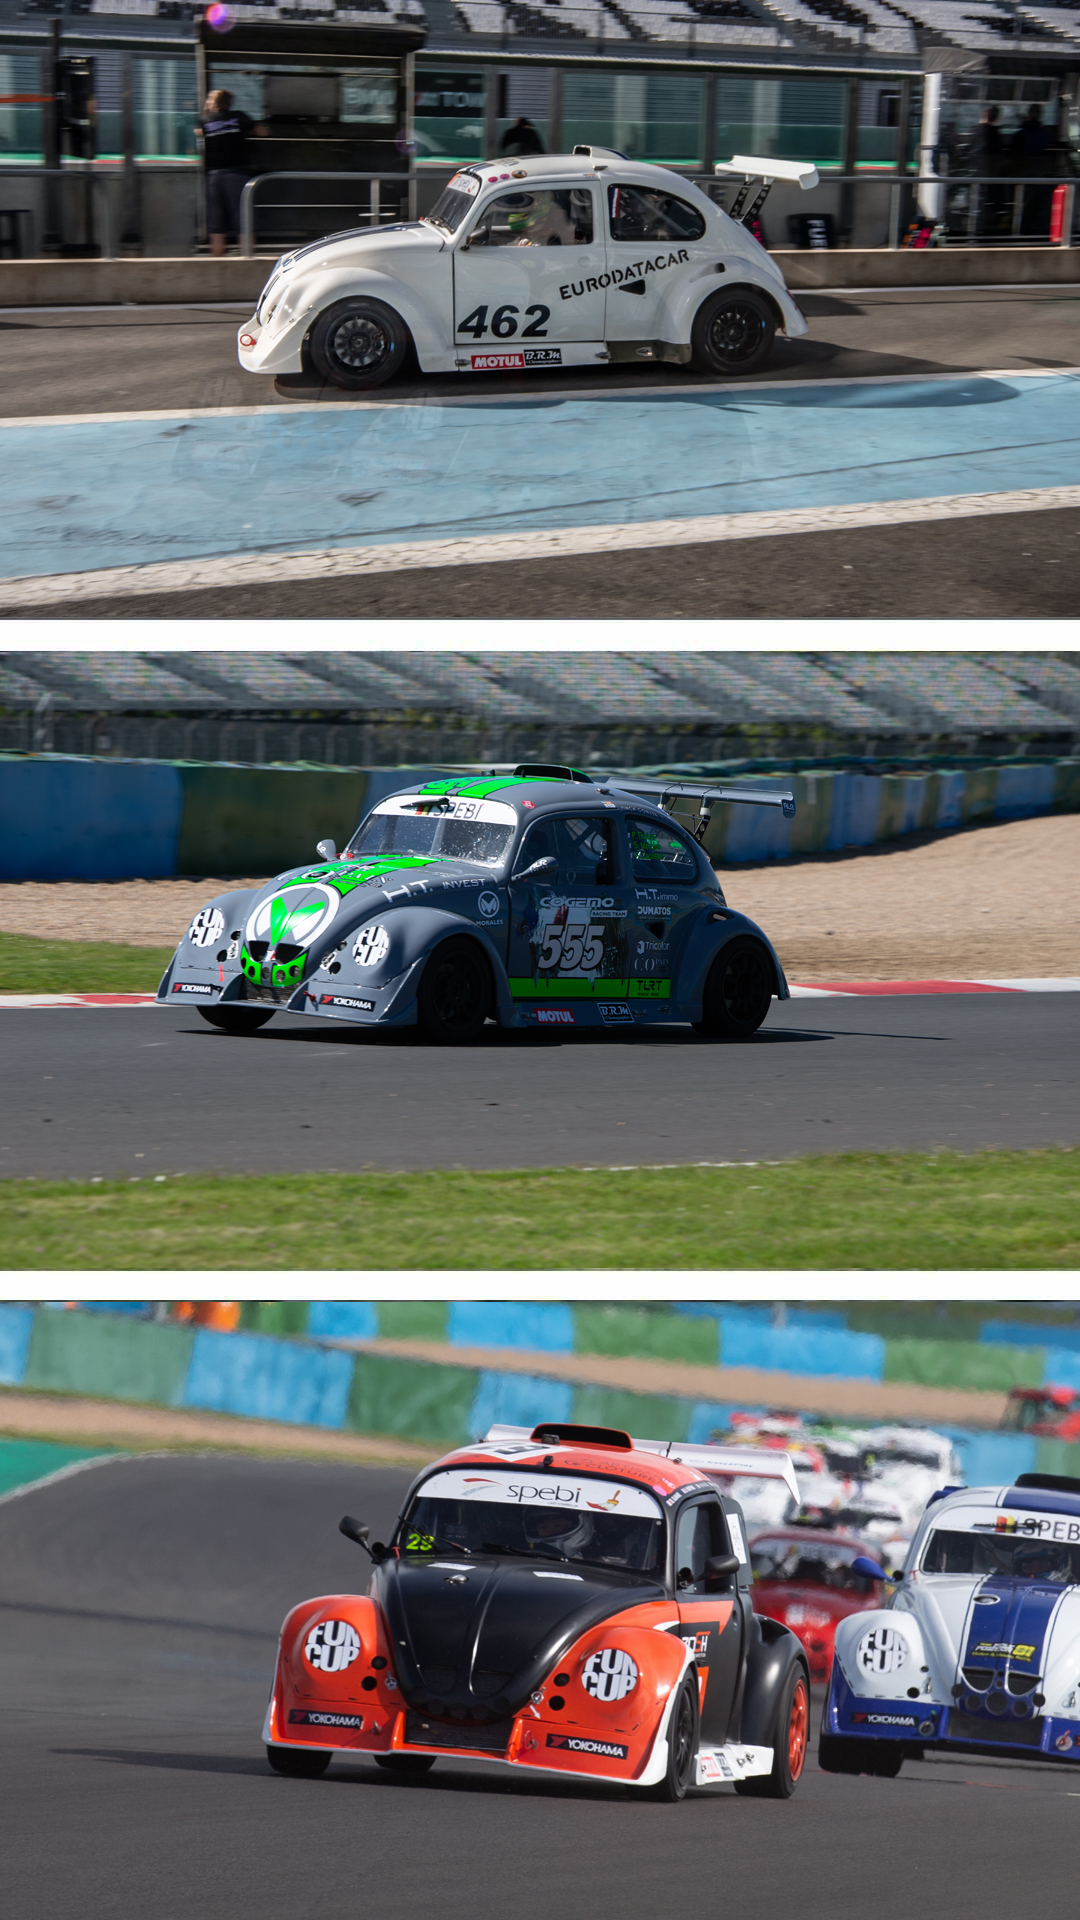 Podium Fun Cup - Magny-Cours 2020